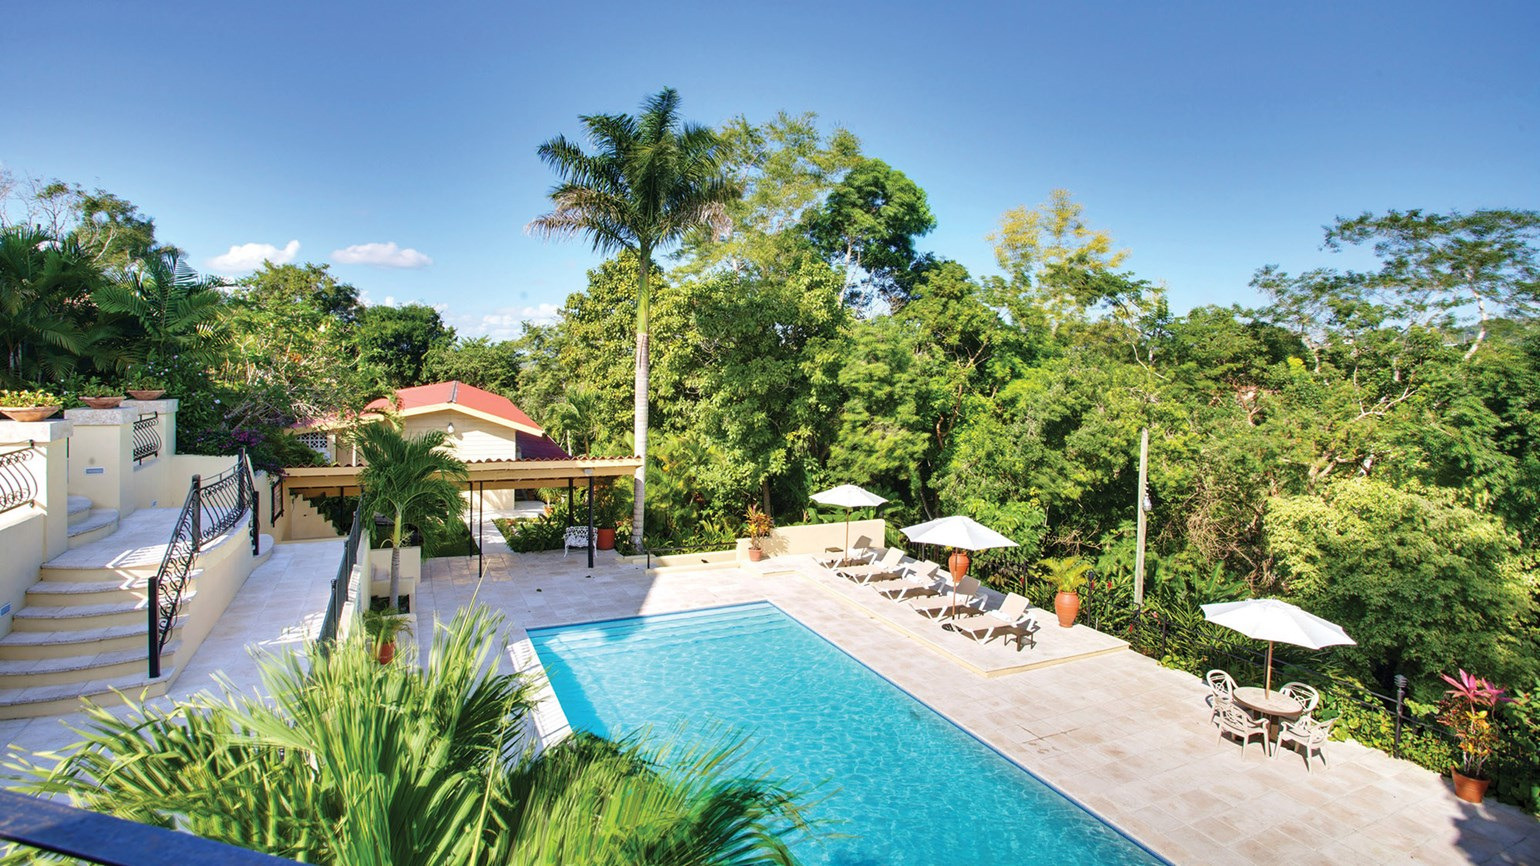 Education, adventure at San Ignacio Resort Hotel in Belize